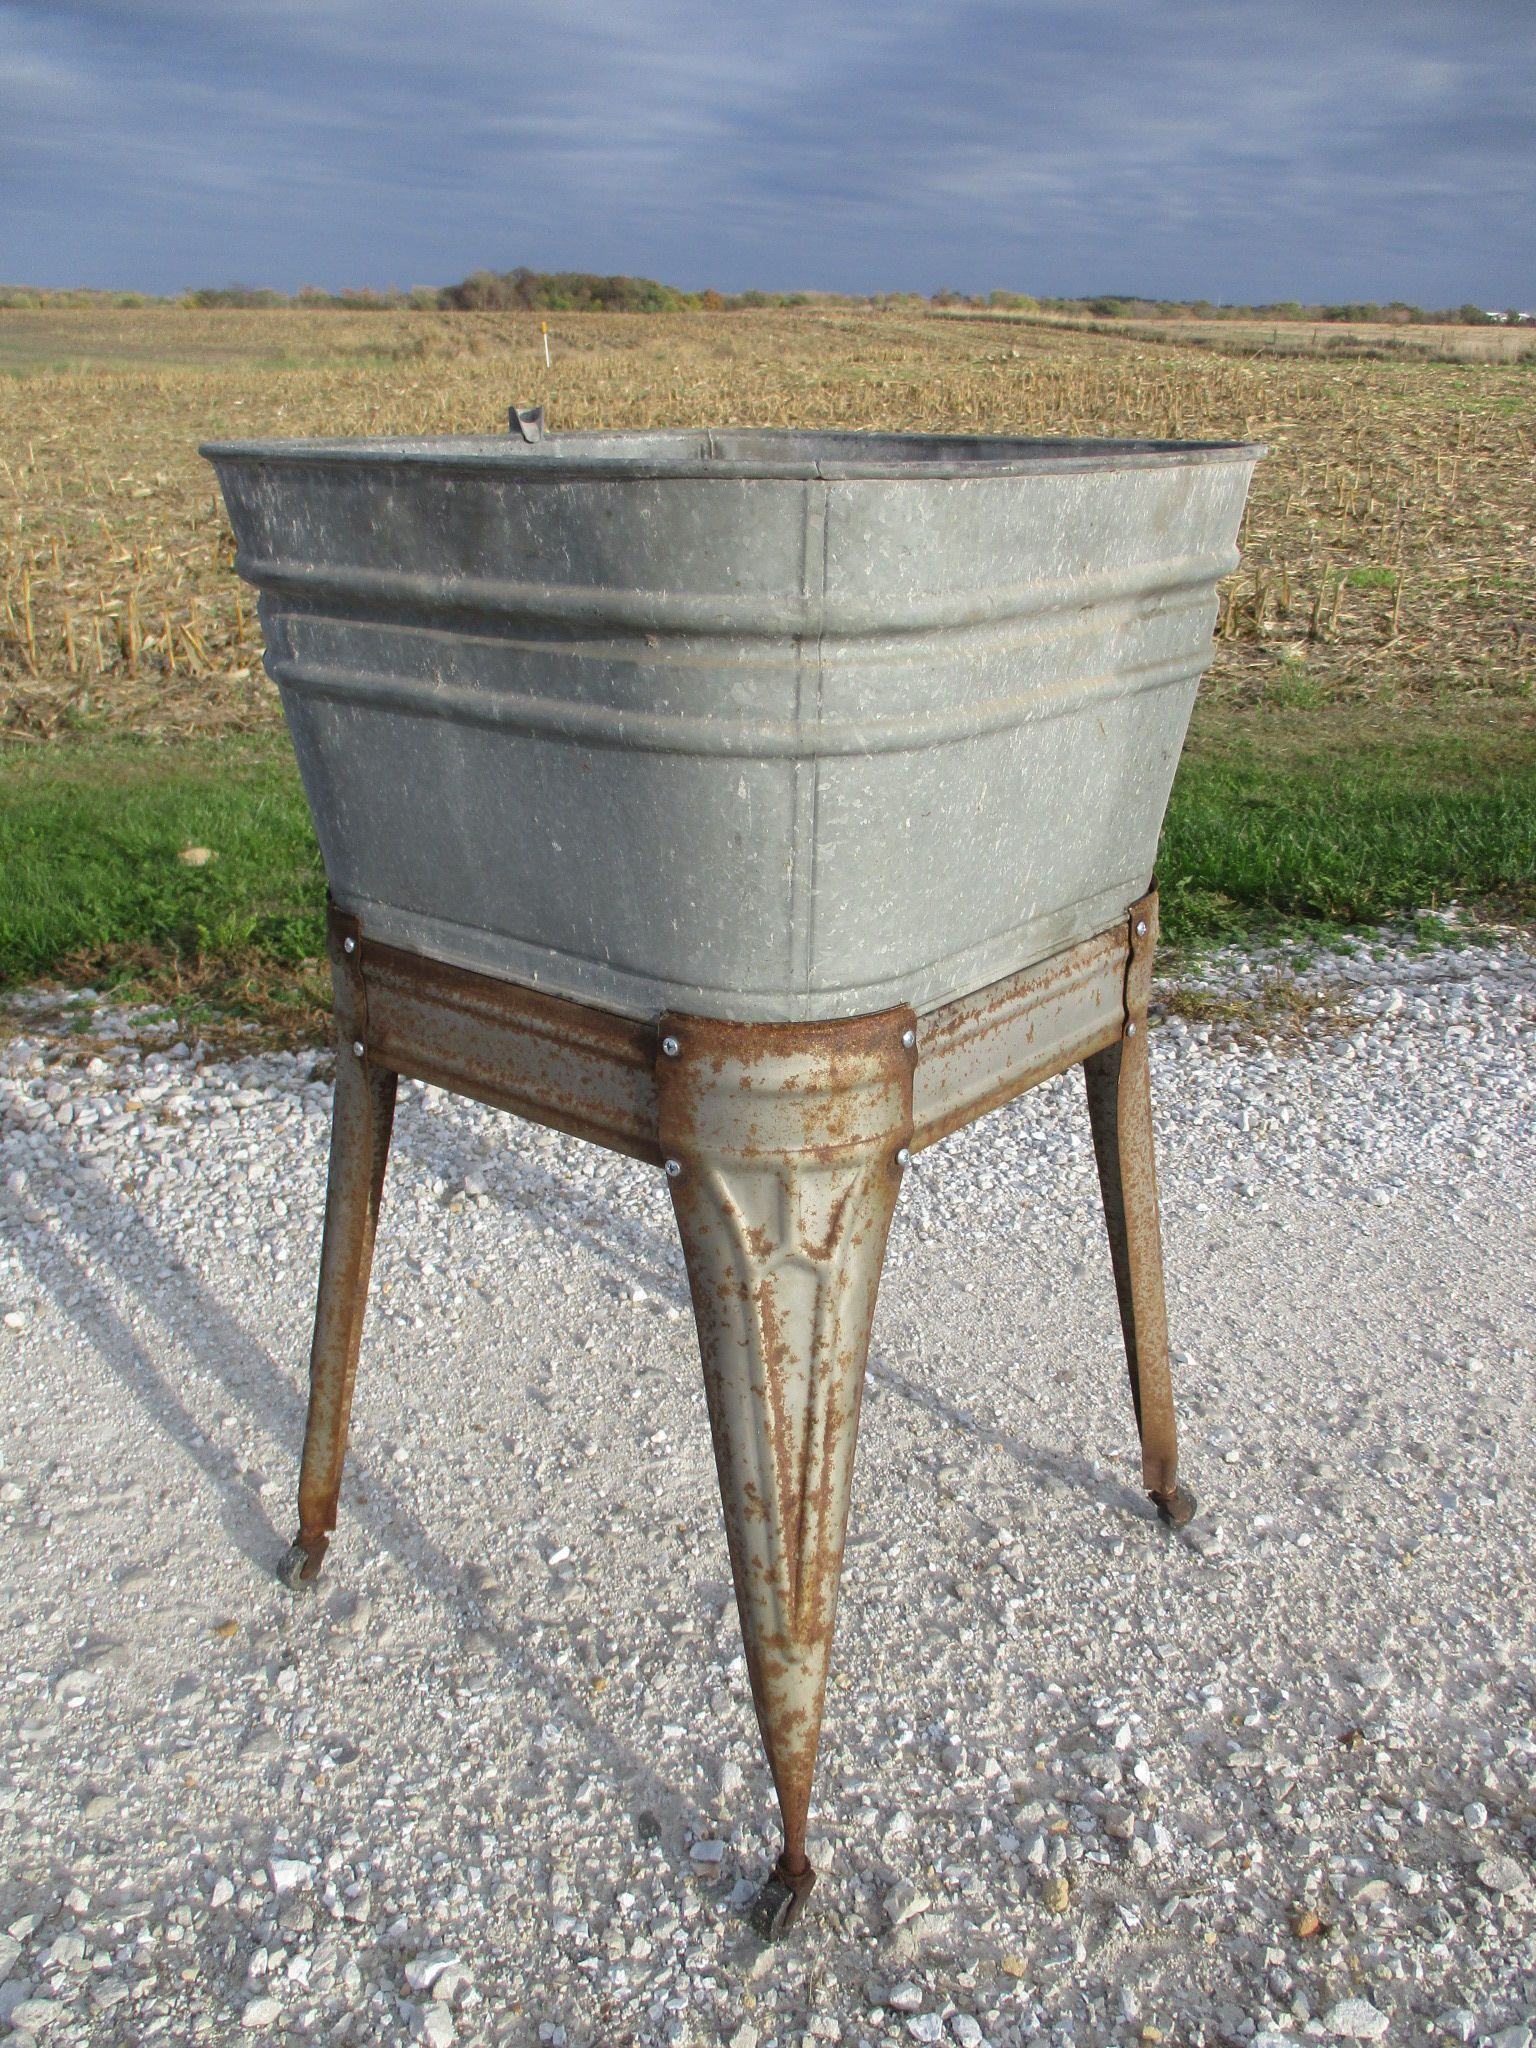 Wheeling Galvanized Single Wash Tub Sink Cooler Flower Pot Plant Stand Bucket Cf By Theoldgrainery On Etsy Wash Tub Sink Wash Tubs Galvanized Wash Tub